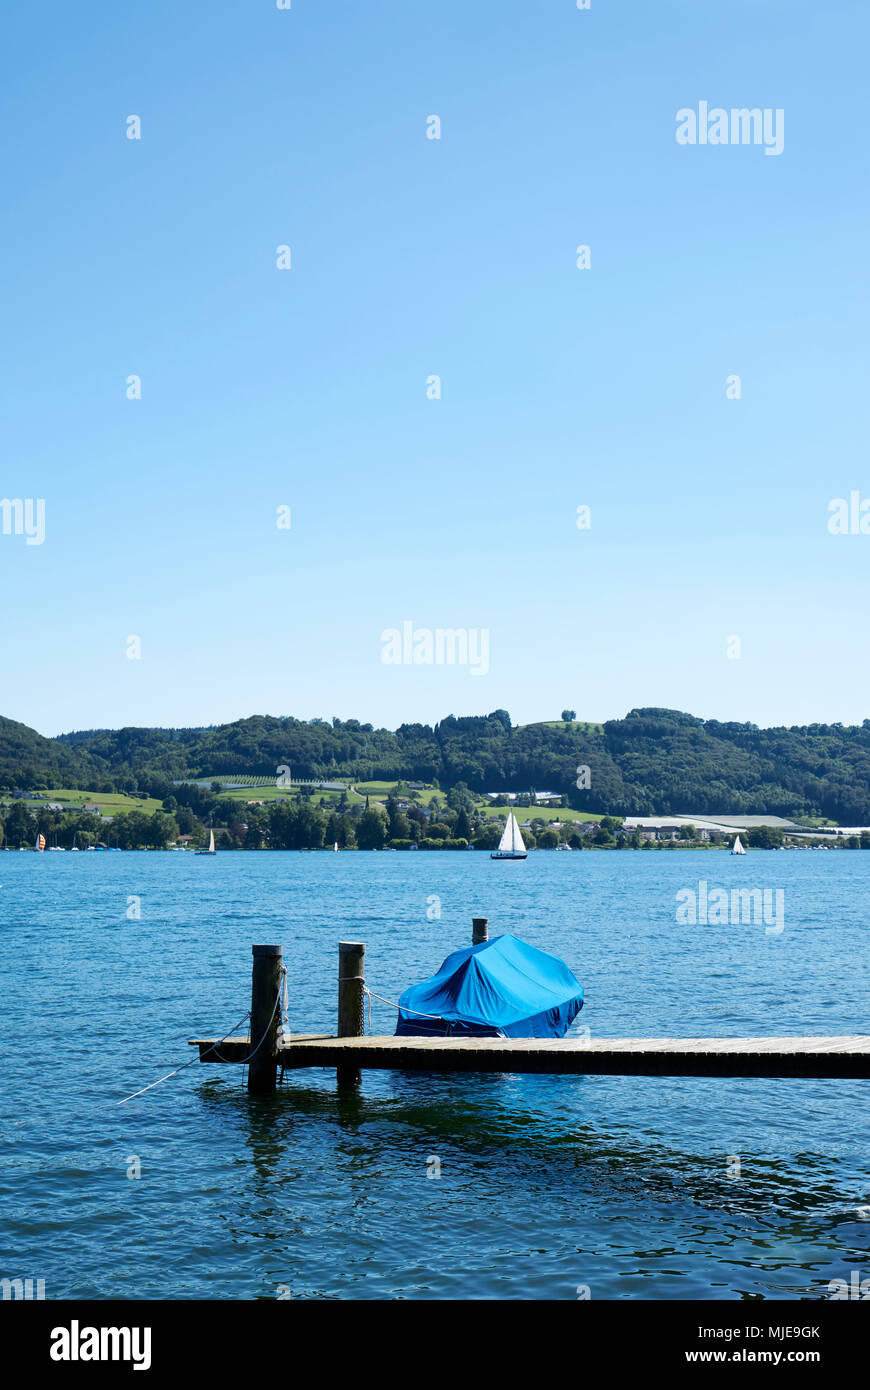 Boat secured on a jetty, view towards the shore, lake in summer - Stock Image